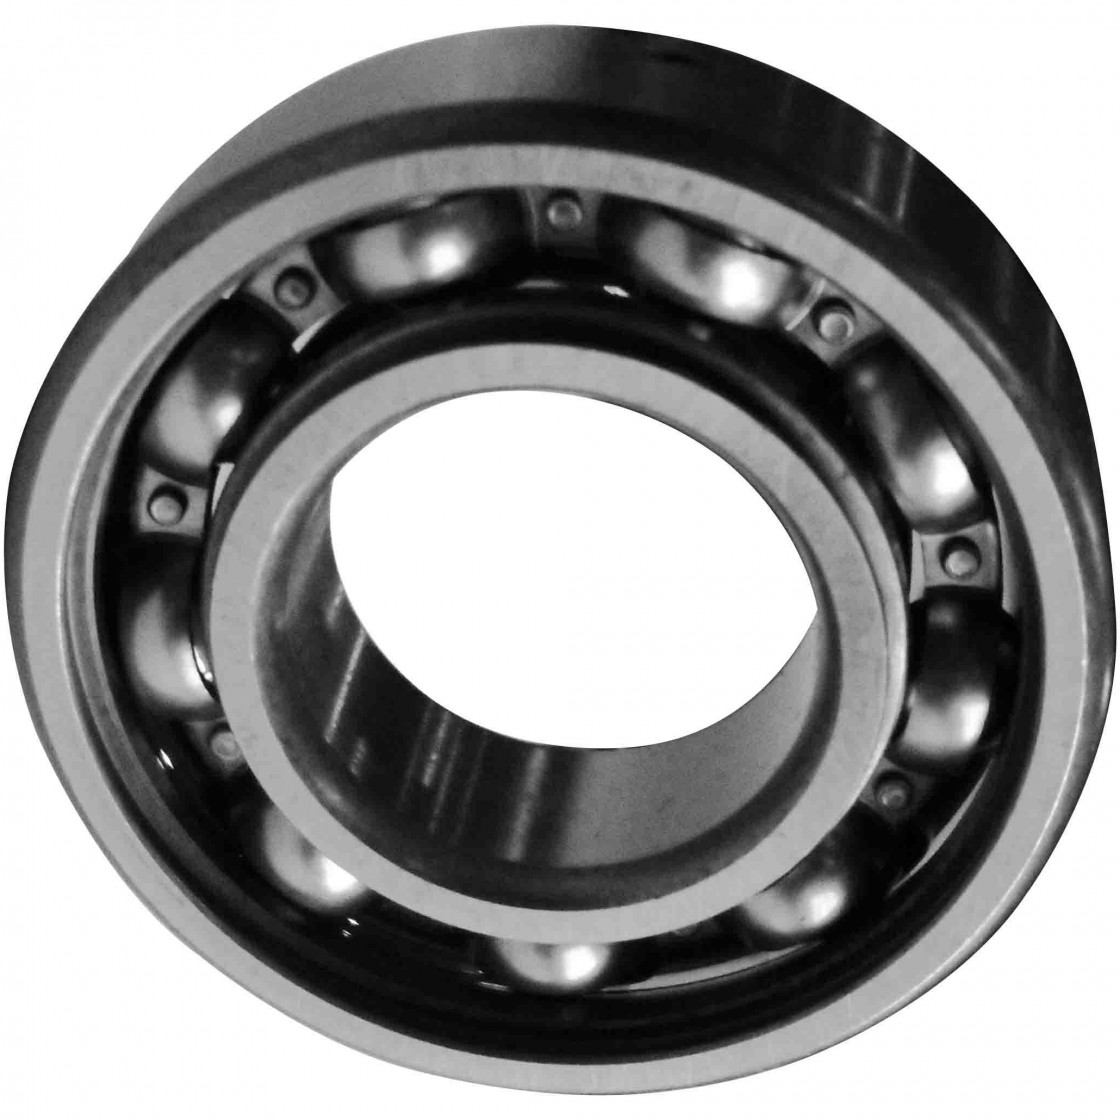 45 mm x 120 mm x 29 mm  ISB 6409 NR deep groove ball bearings